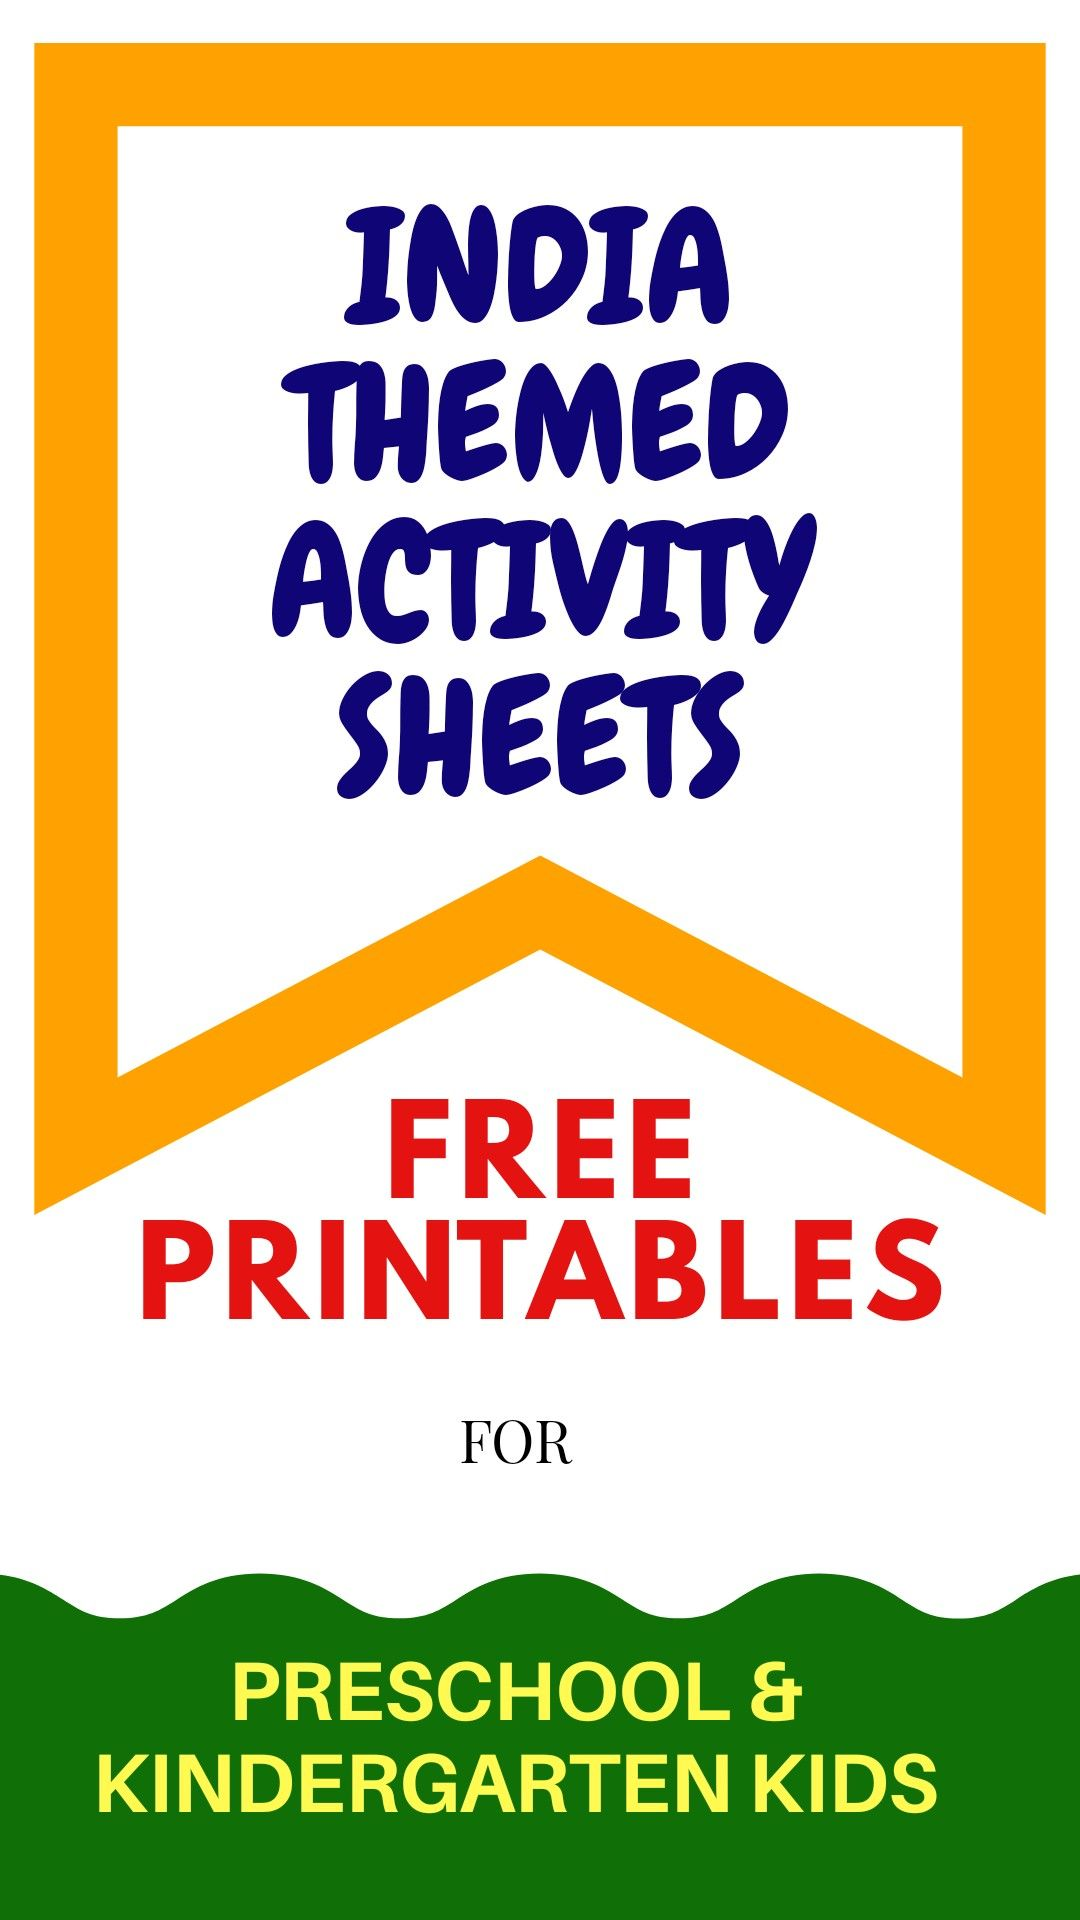 Independence Day Free Printable Activities For Kids In